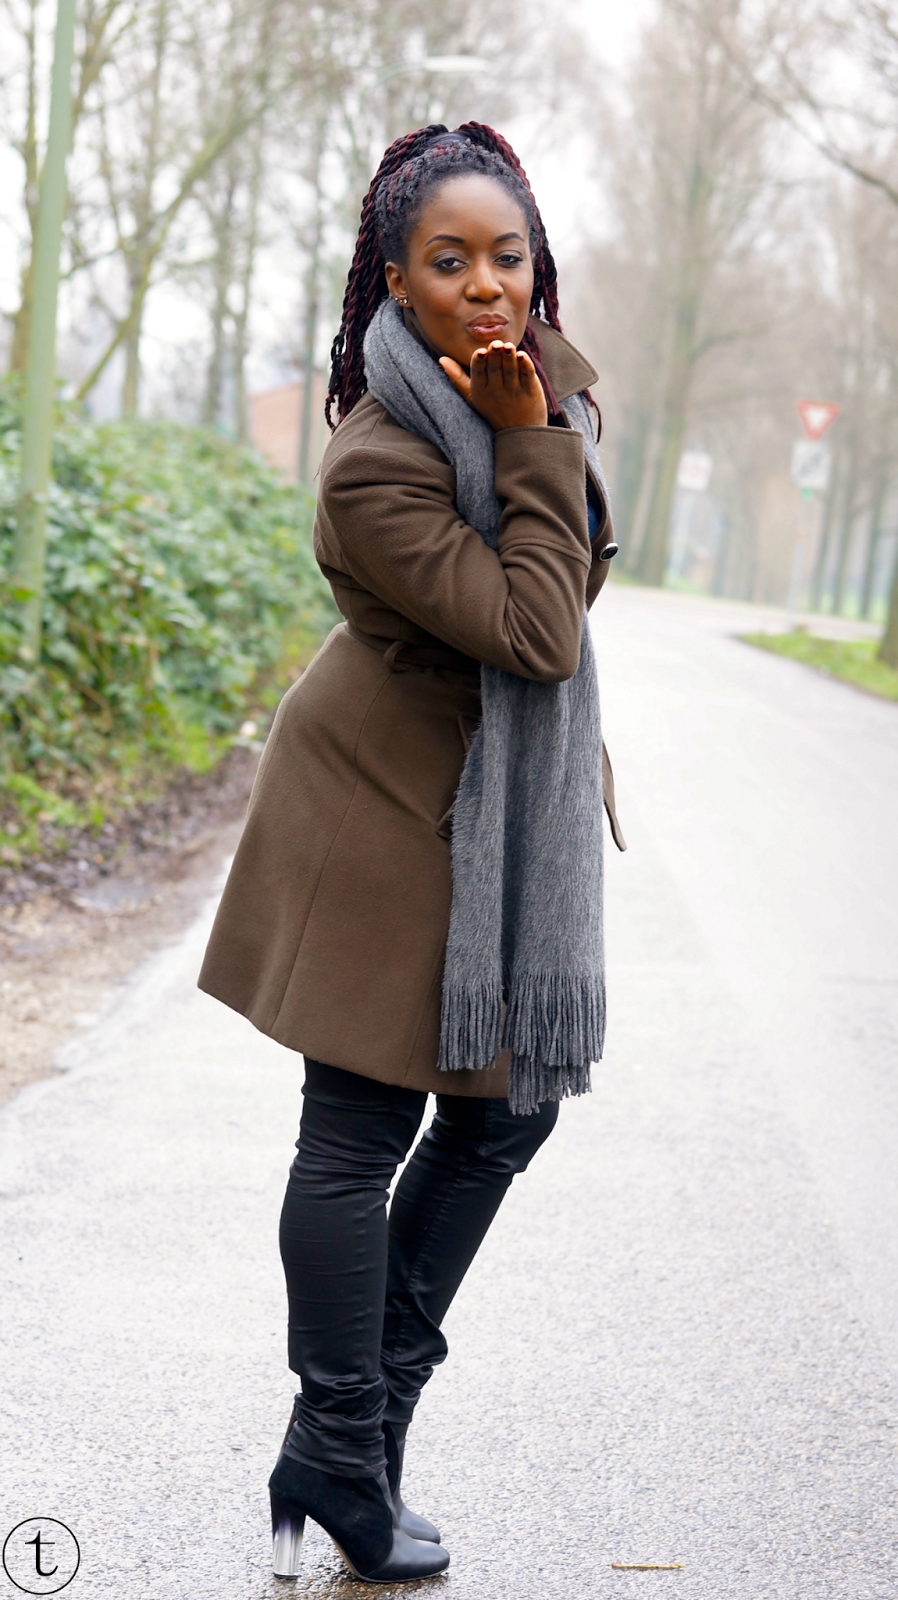 wearing dark green coat from miss selffridge and black leather pants from h&m